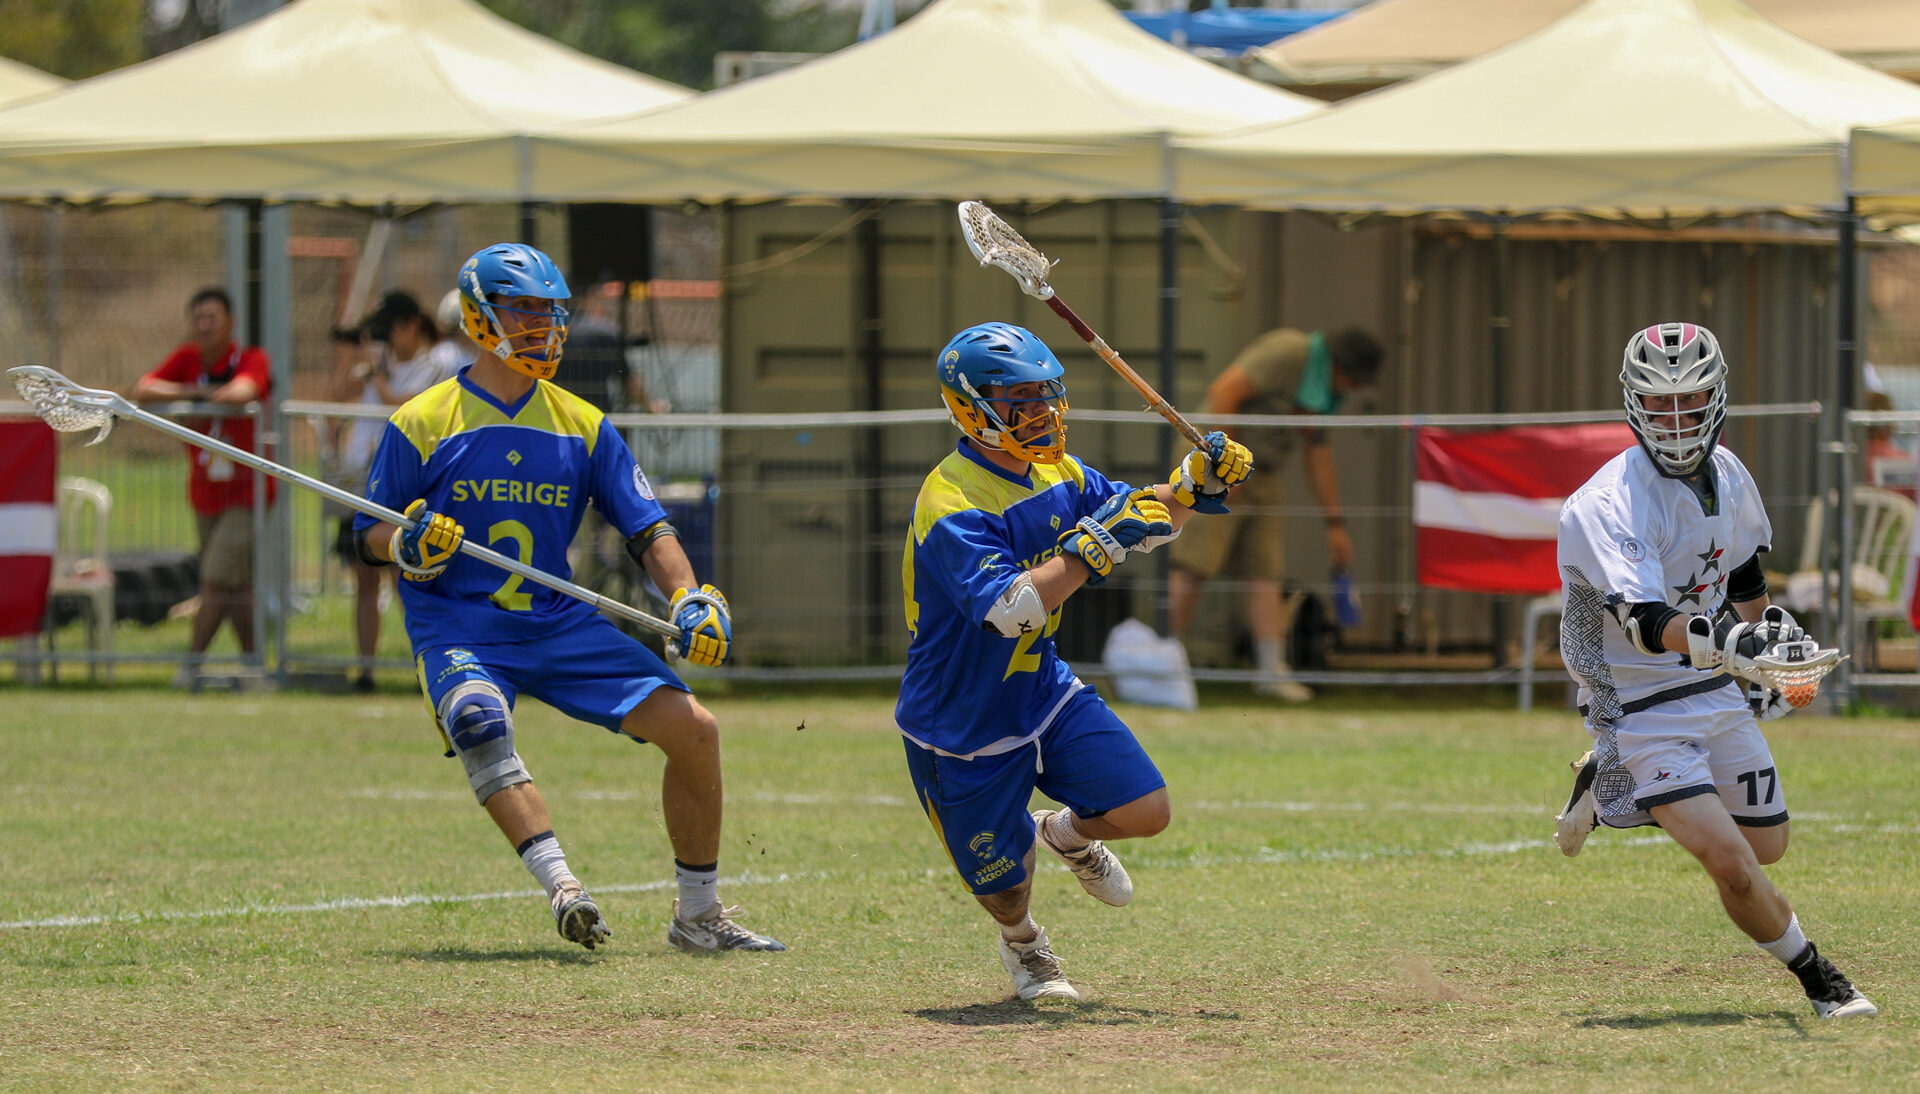 https://lacrosse.se/wp-content/uploads/2019/02/sweden_latvija_stor_day6-013-24223-e1549449397864.jpg